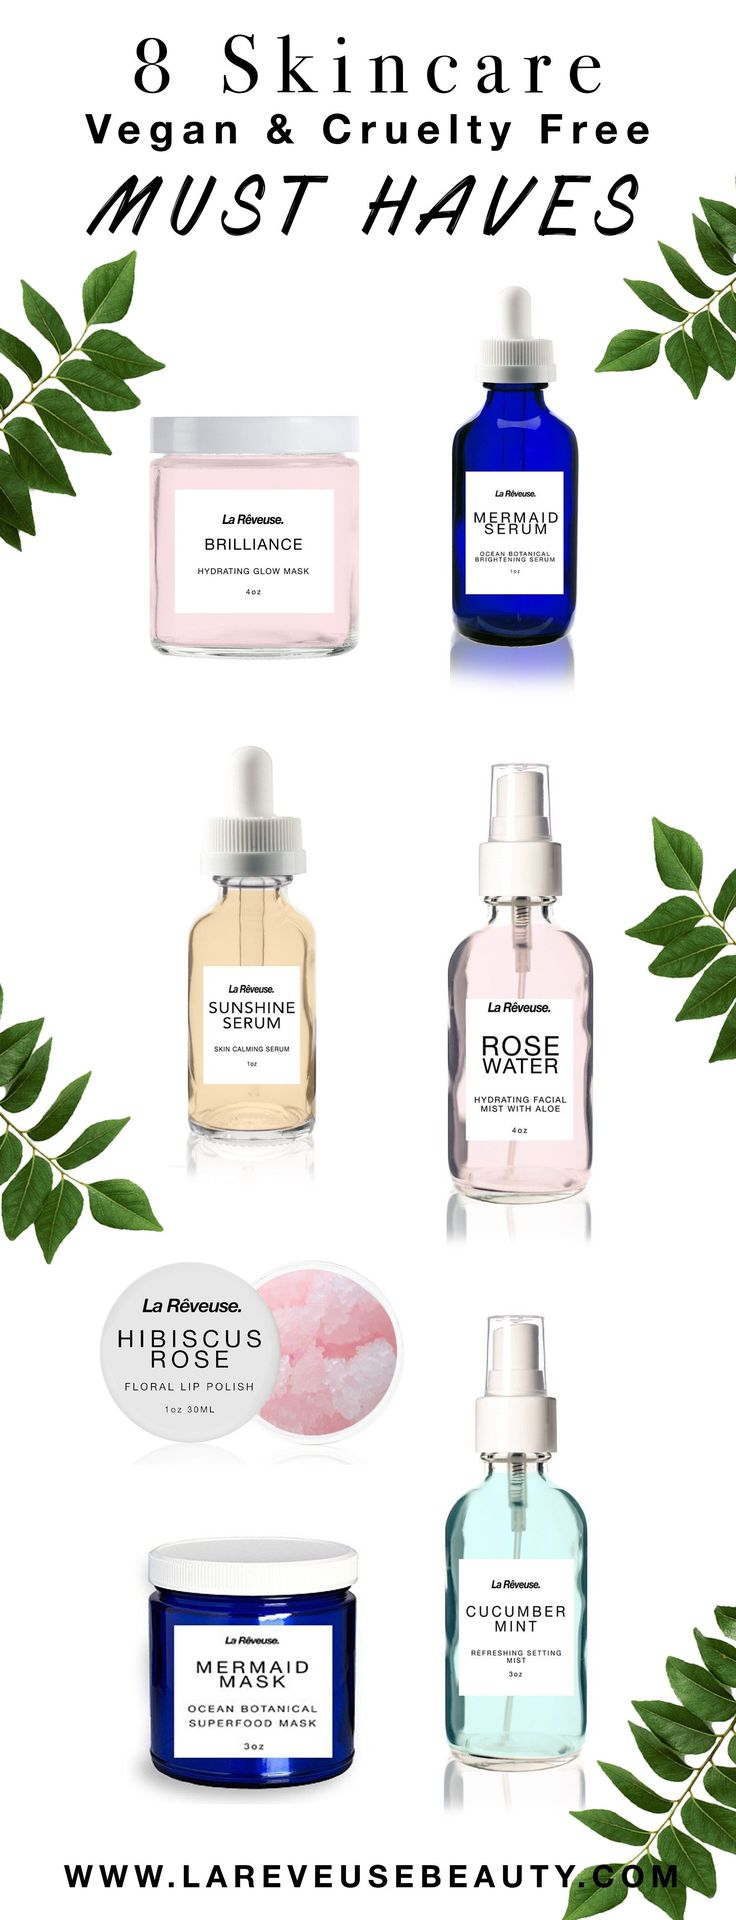 8 Vegan & Cruelty Free Skincare Must Haves